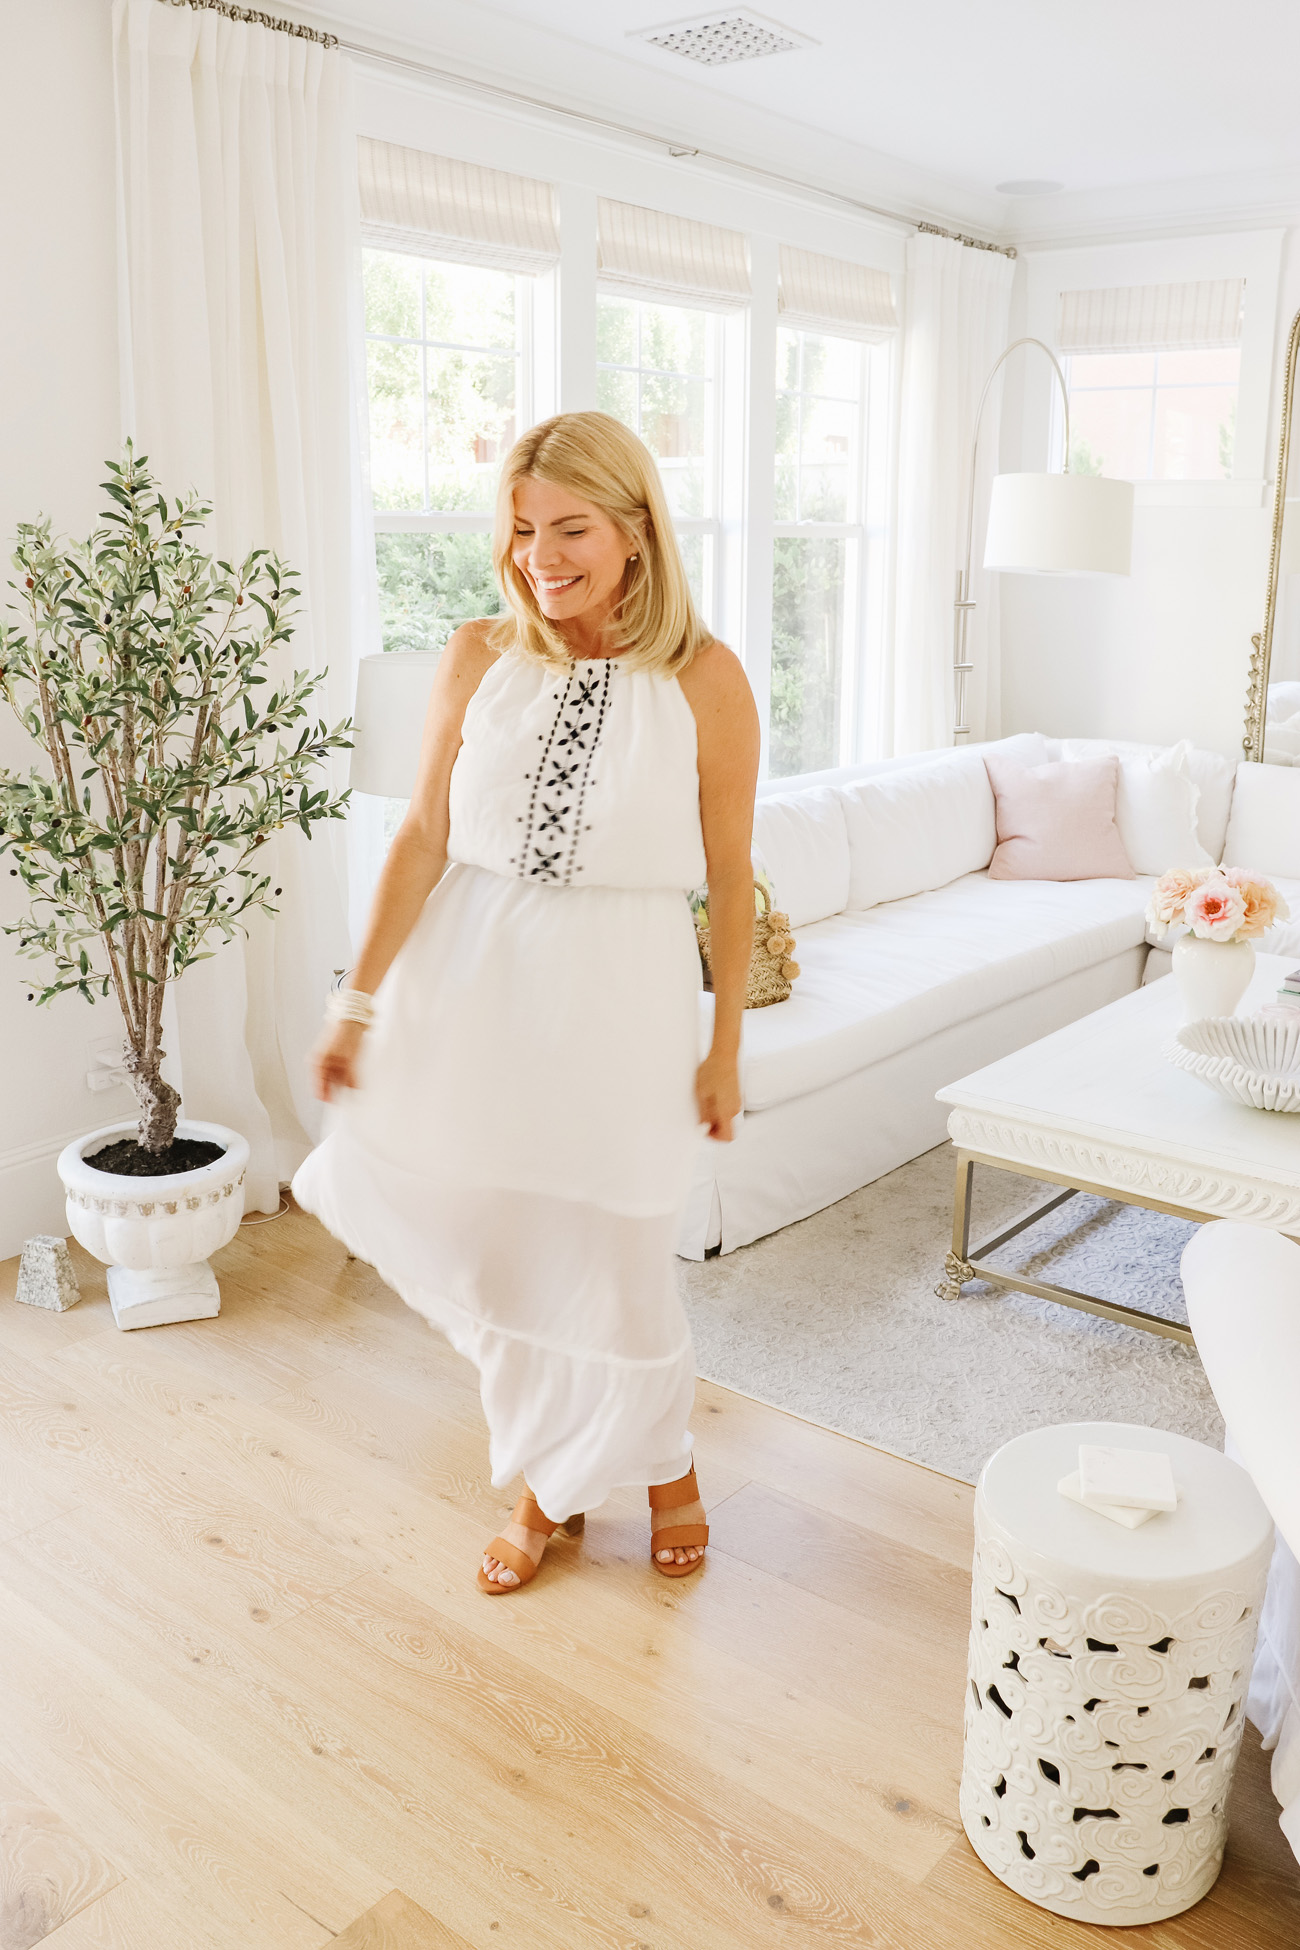 Affordable Resort Essentials - Found the BEST vacation wear at Walmart for under $40.. everything is perfect for your next beach getaway. | Kristy Wicks